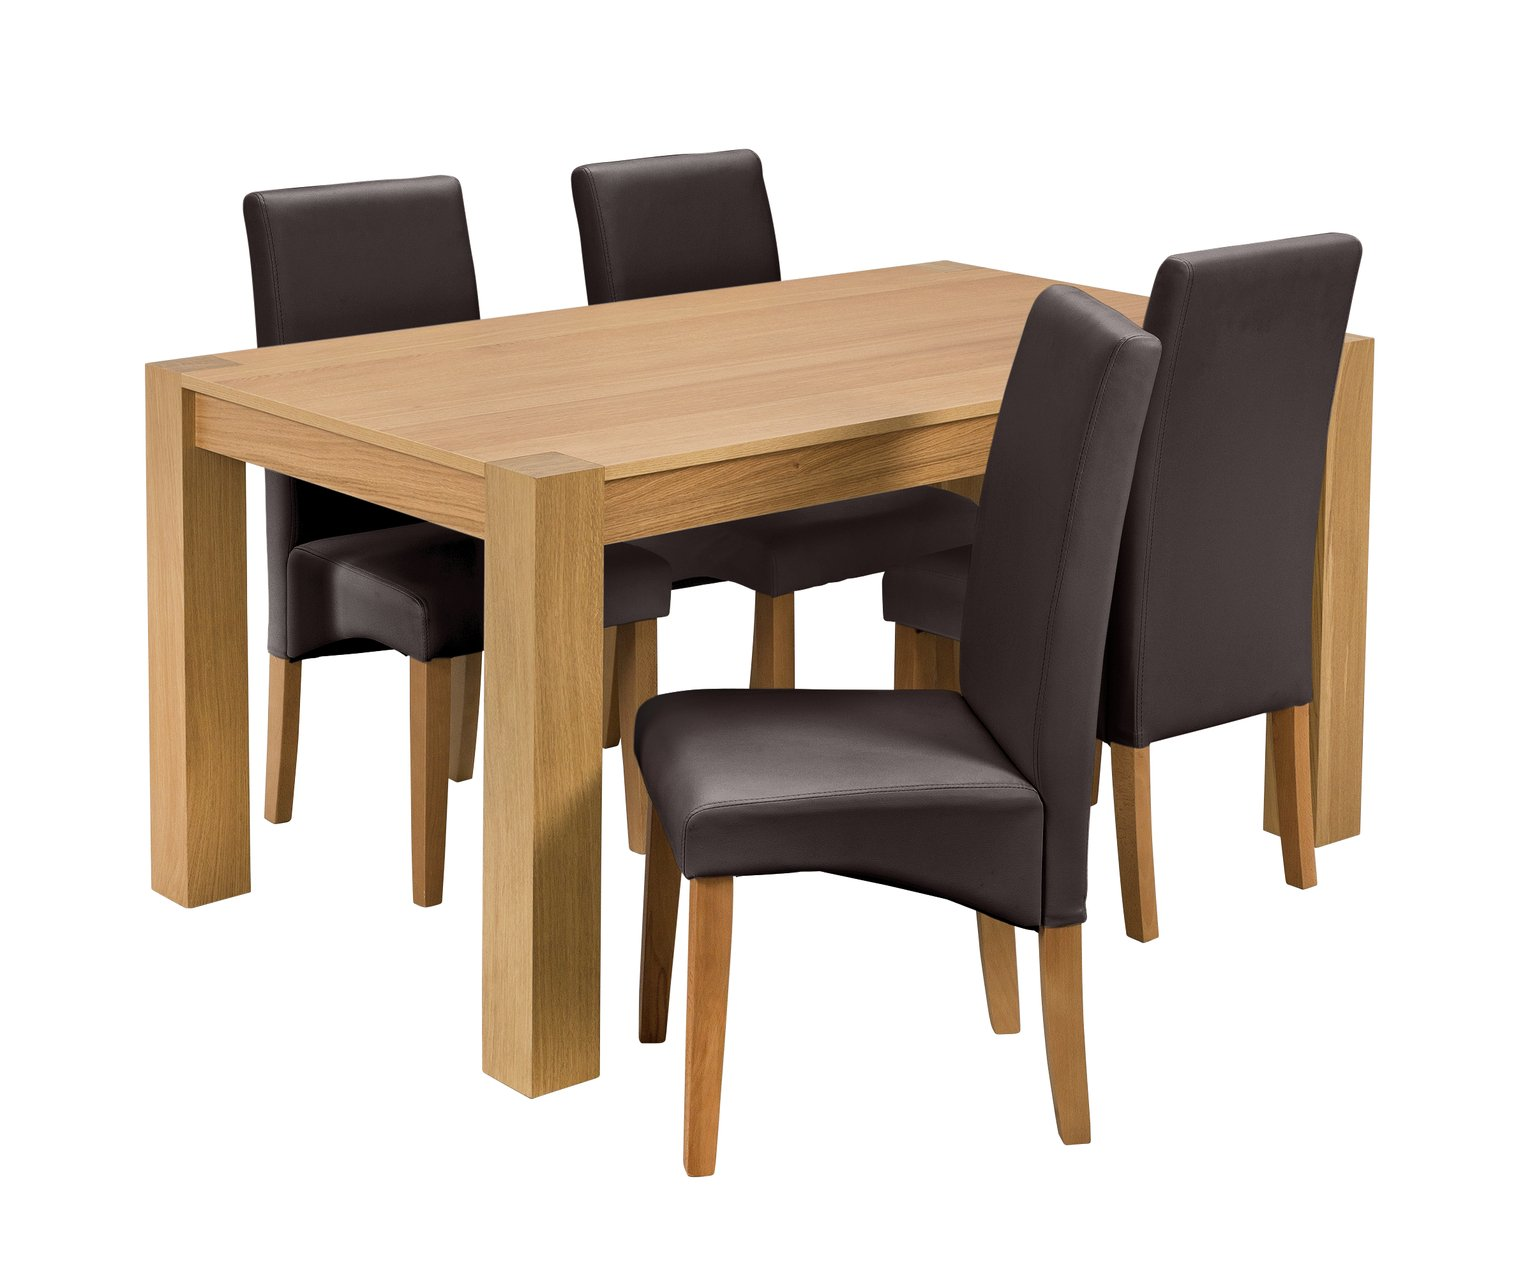 Argos Home Alston Oak Veneer Table and 4 Chairs - Chocolate